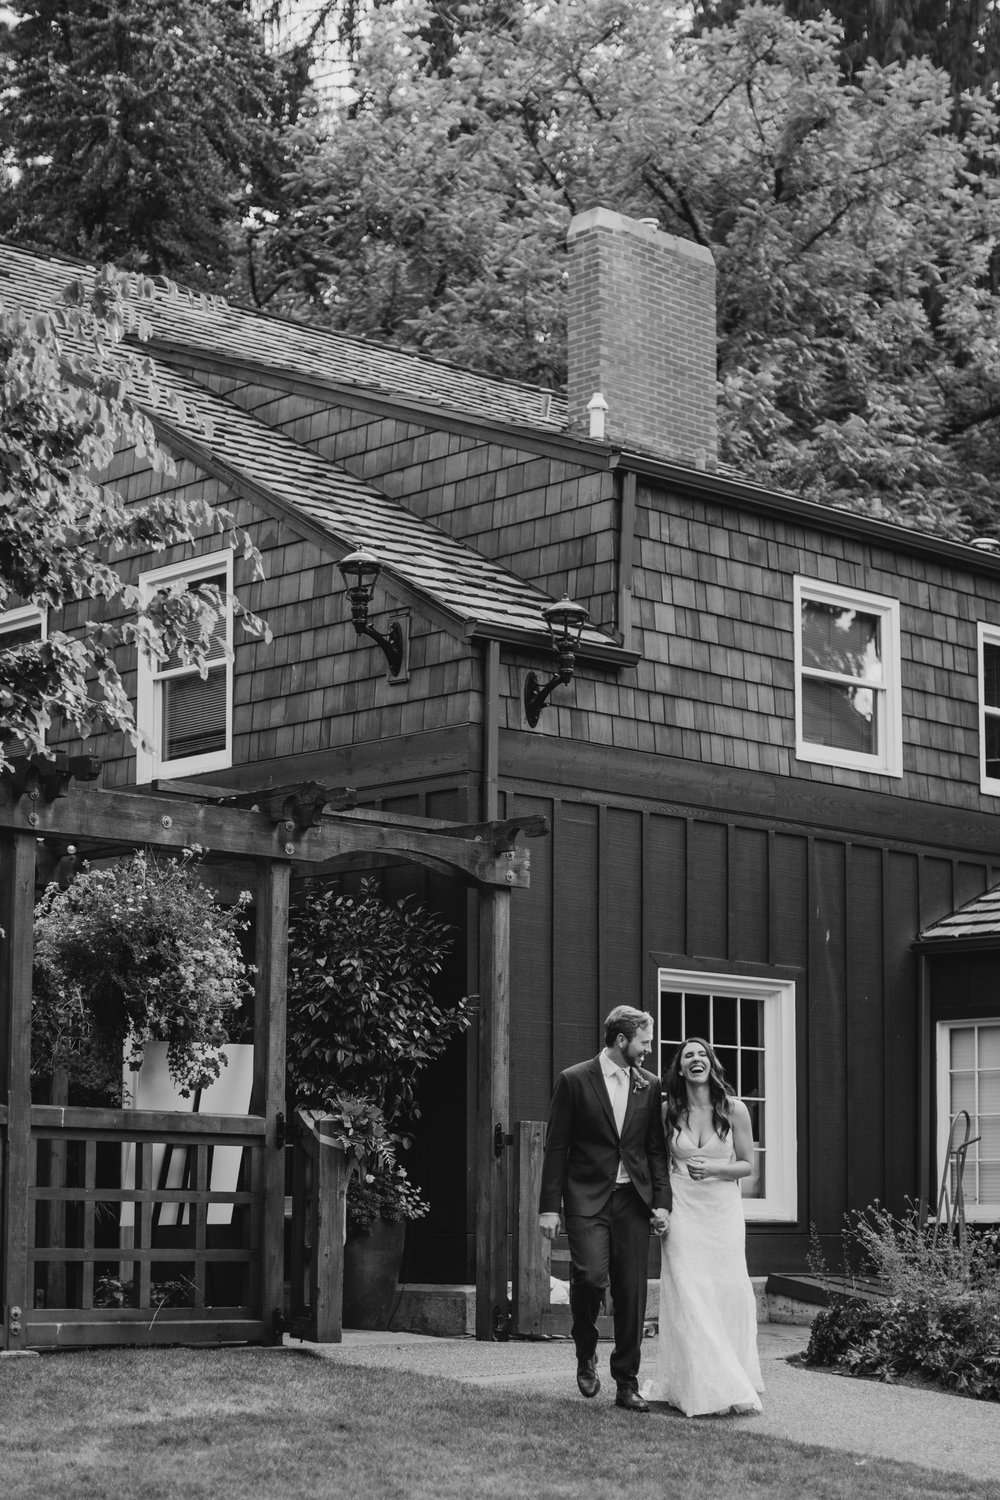 Max&SamPhoto_Seattle Wedding Photographer_Bellevue Robinswood House_012.jpg